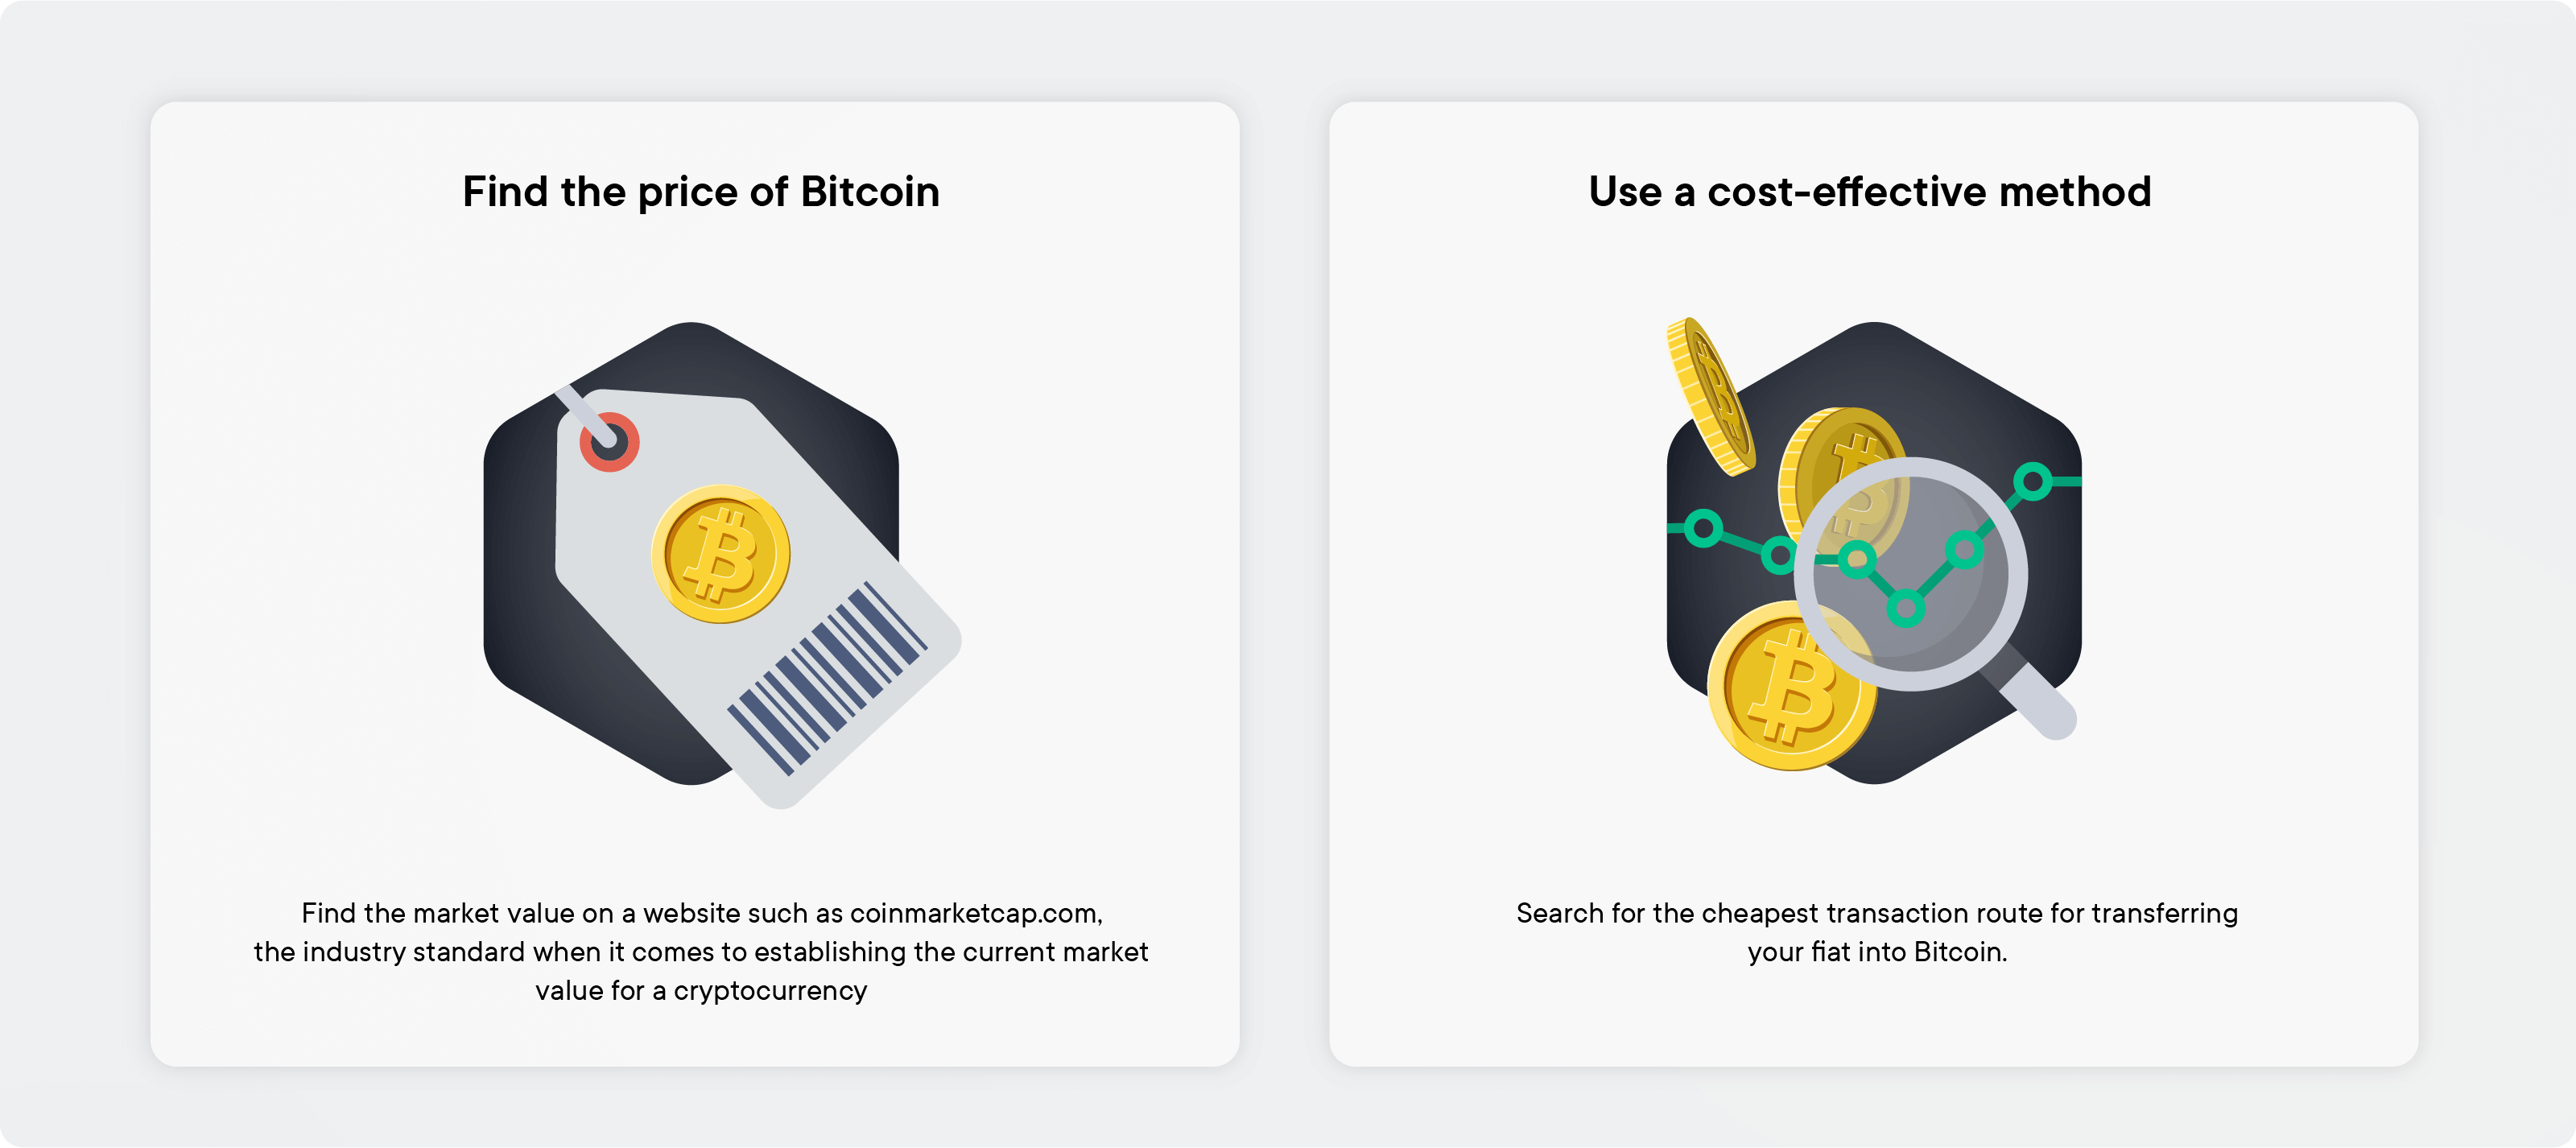 Two fundamental considerations for investing in Bitcoin